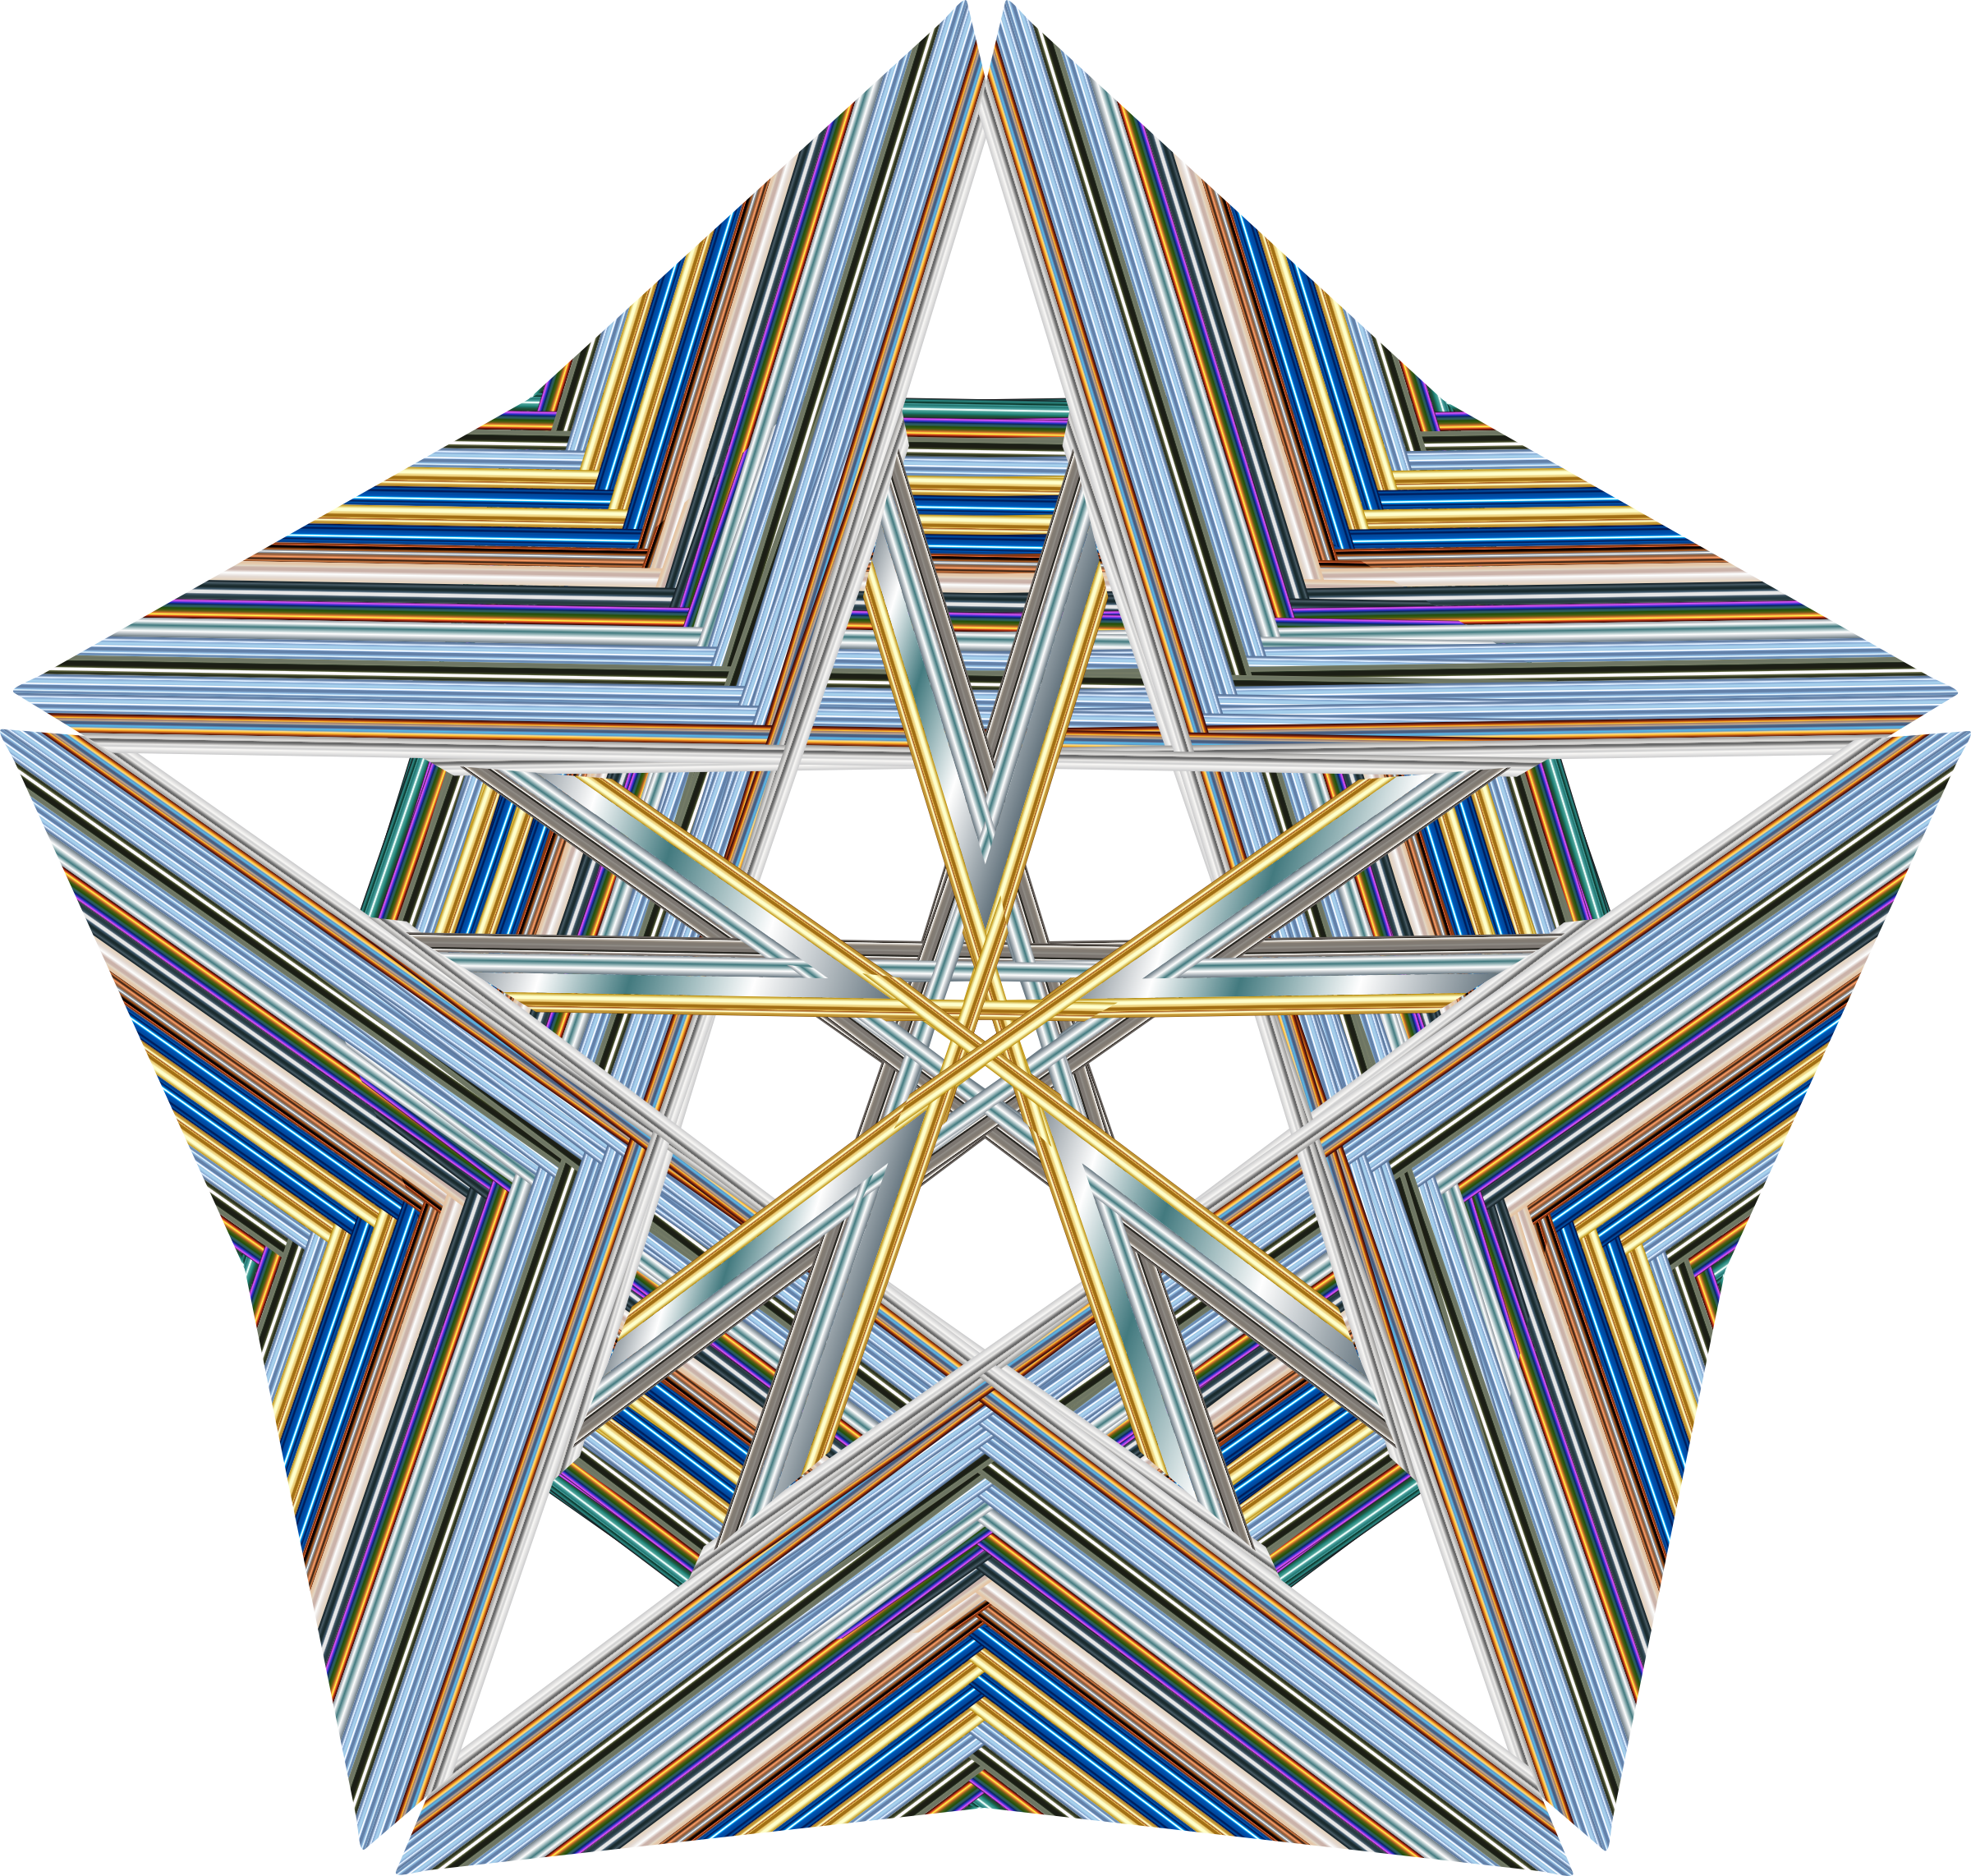 Geometric Star 3 by GDJ